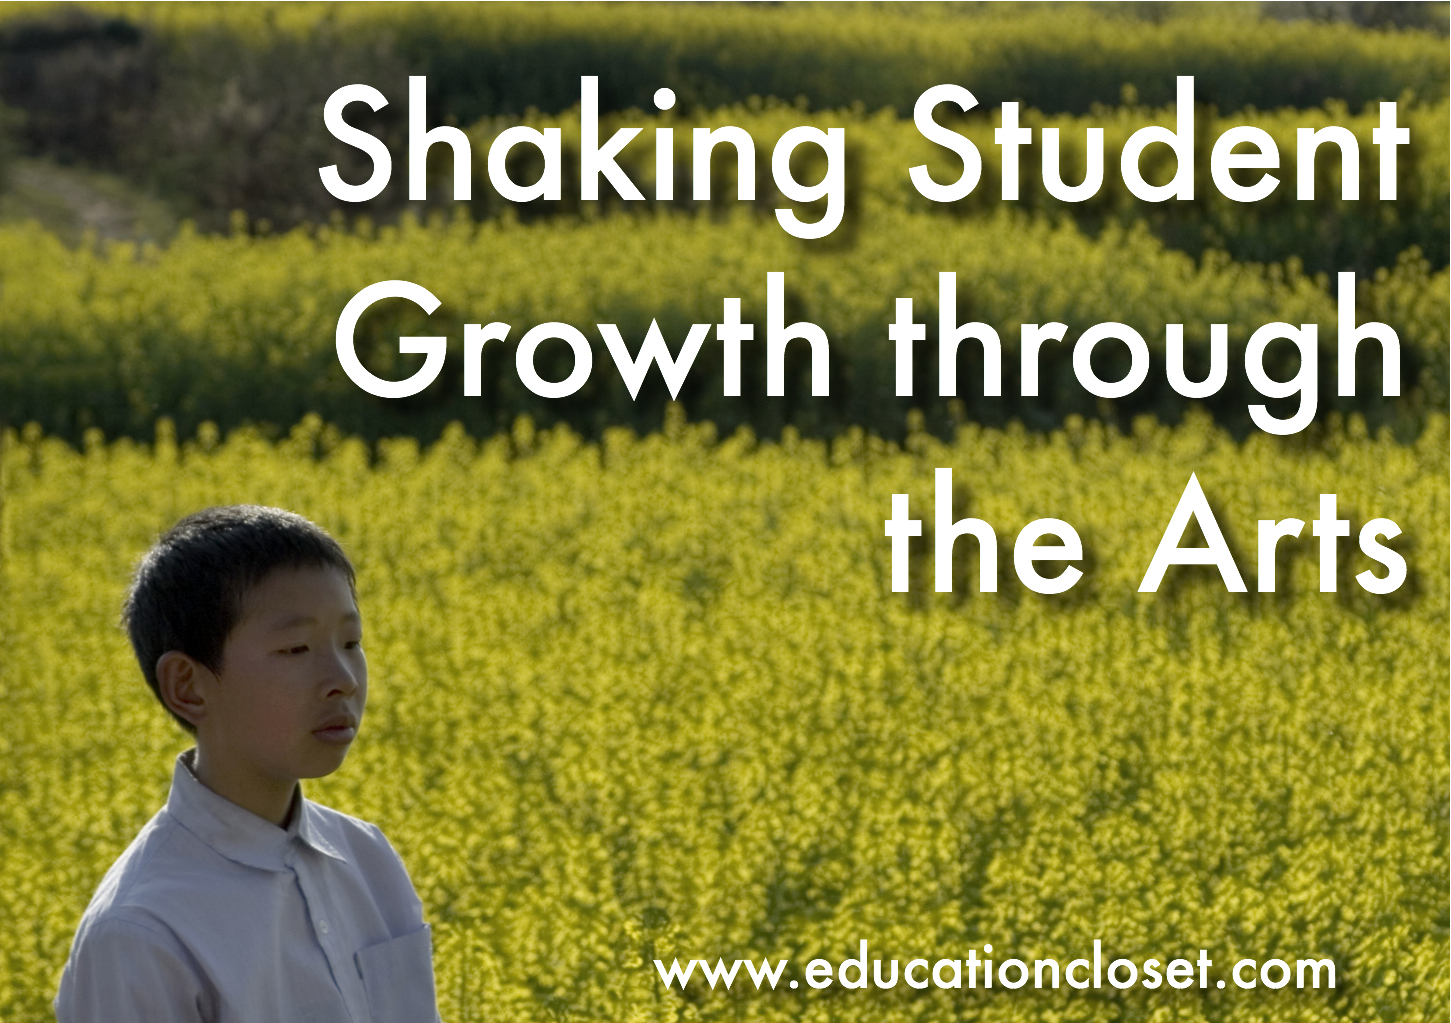 Shaking Student Growth through the Arts, Education Closet